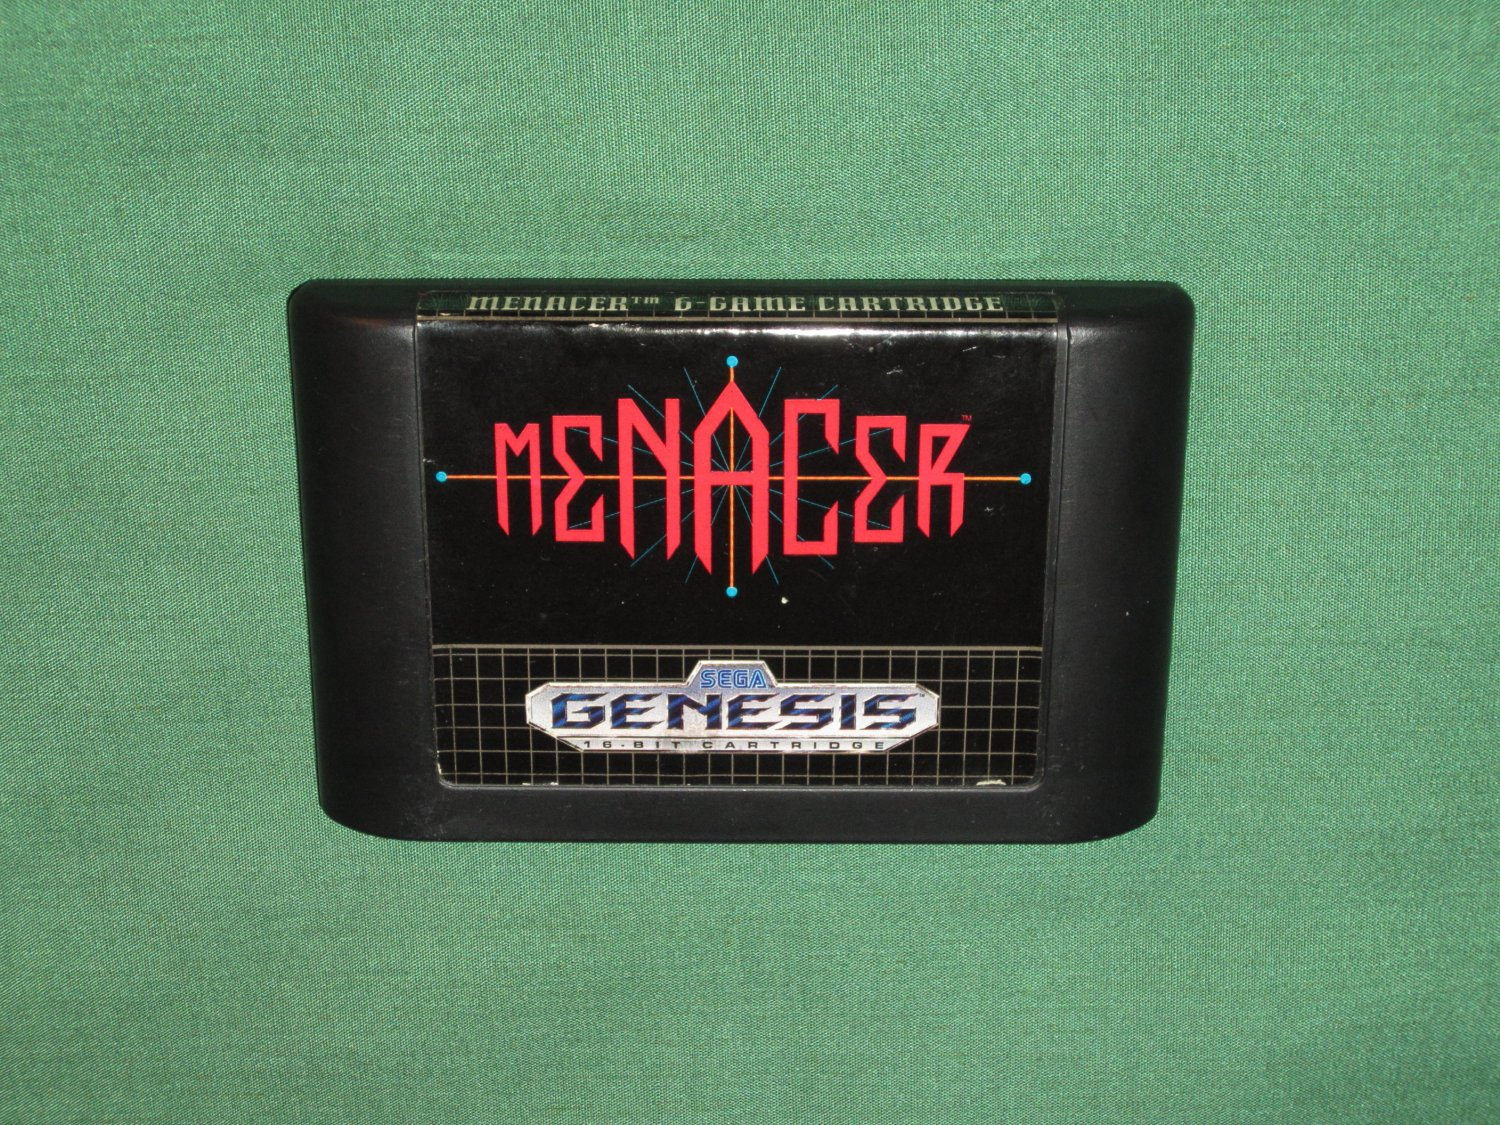 Menacer 6-Game Cartridge (Genesis)